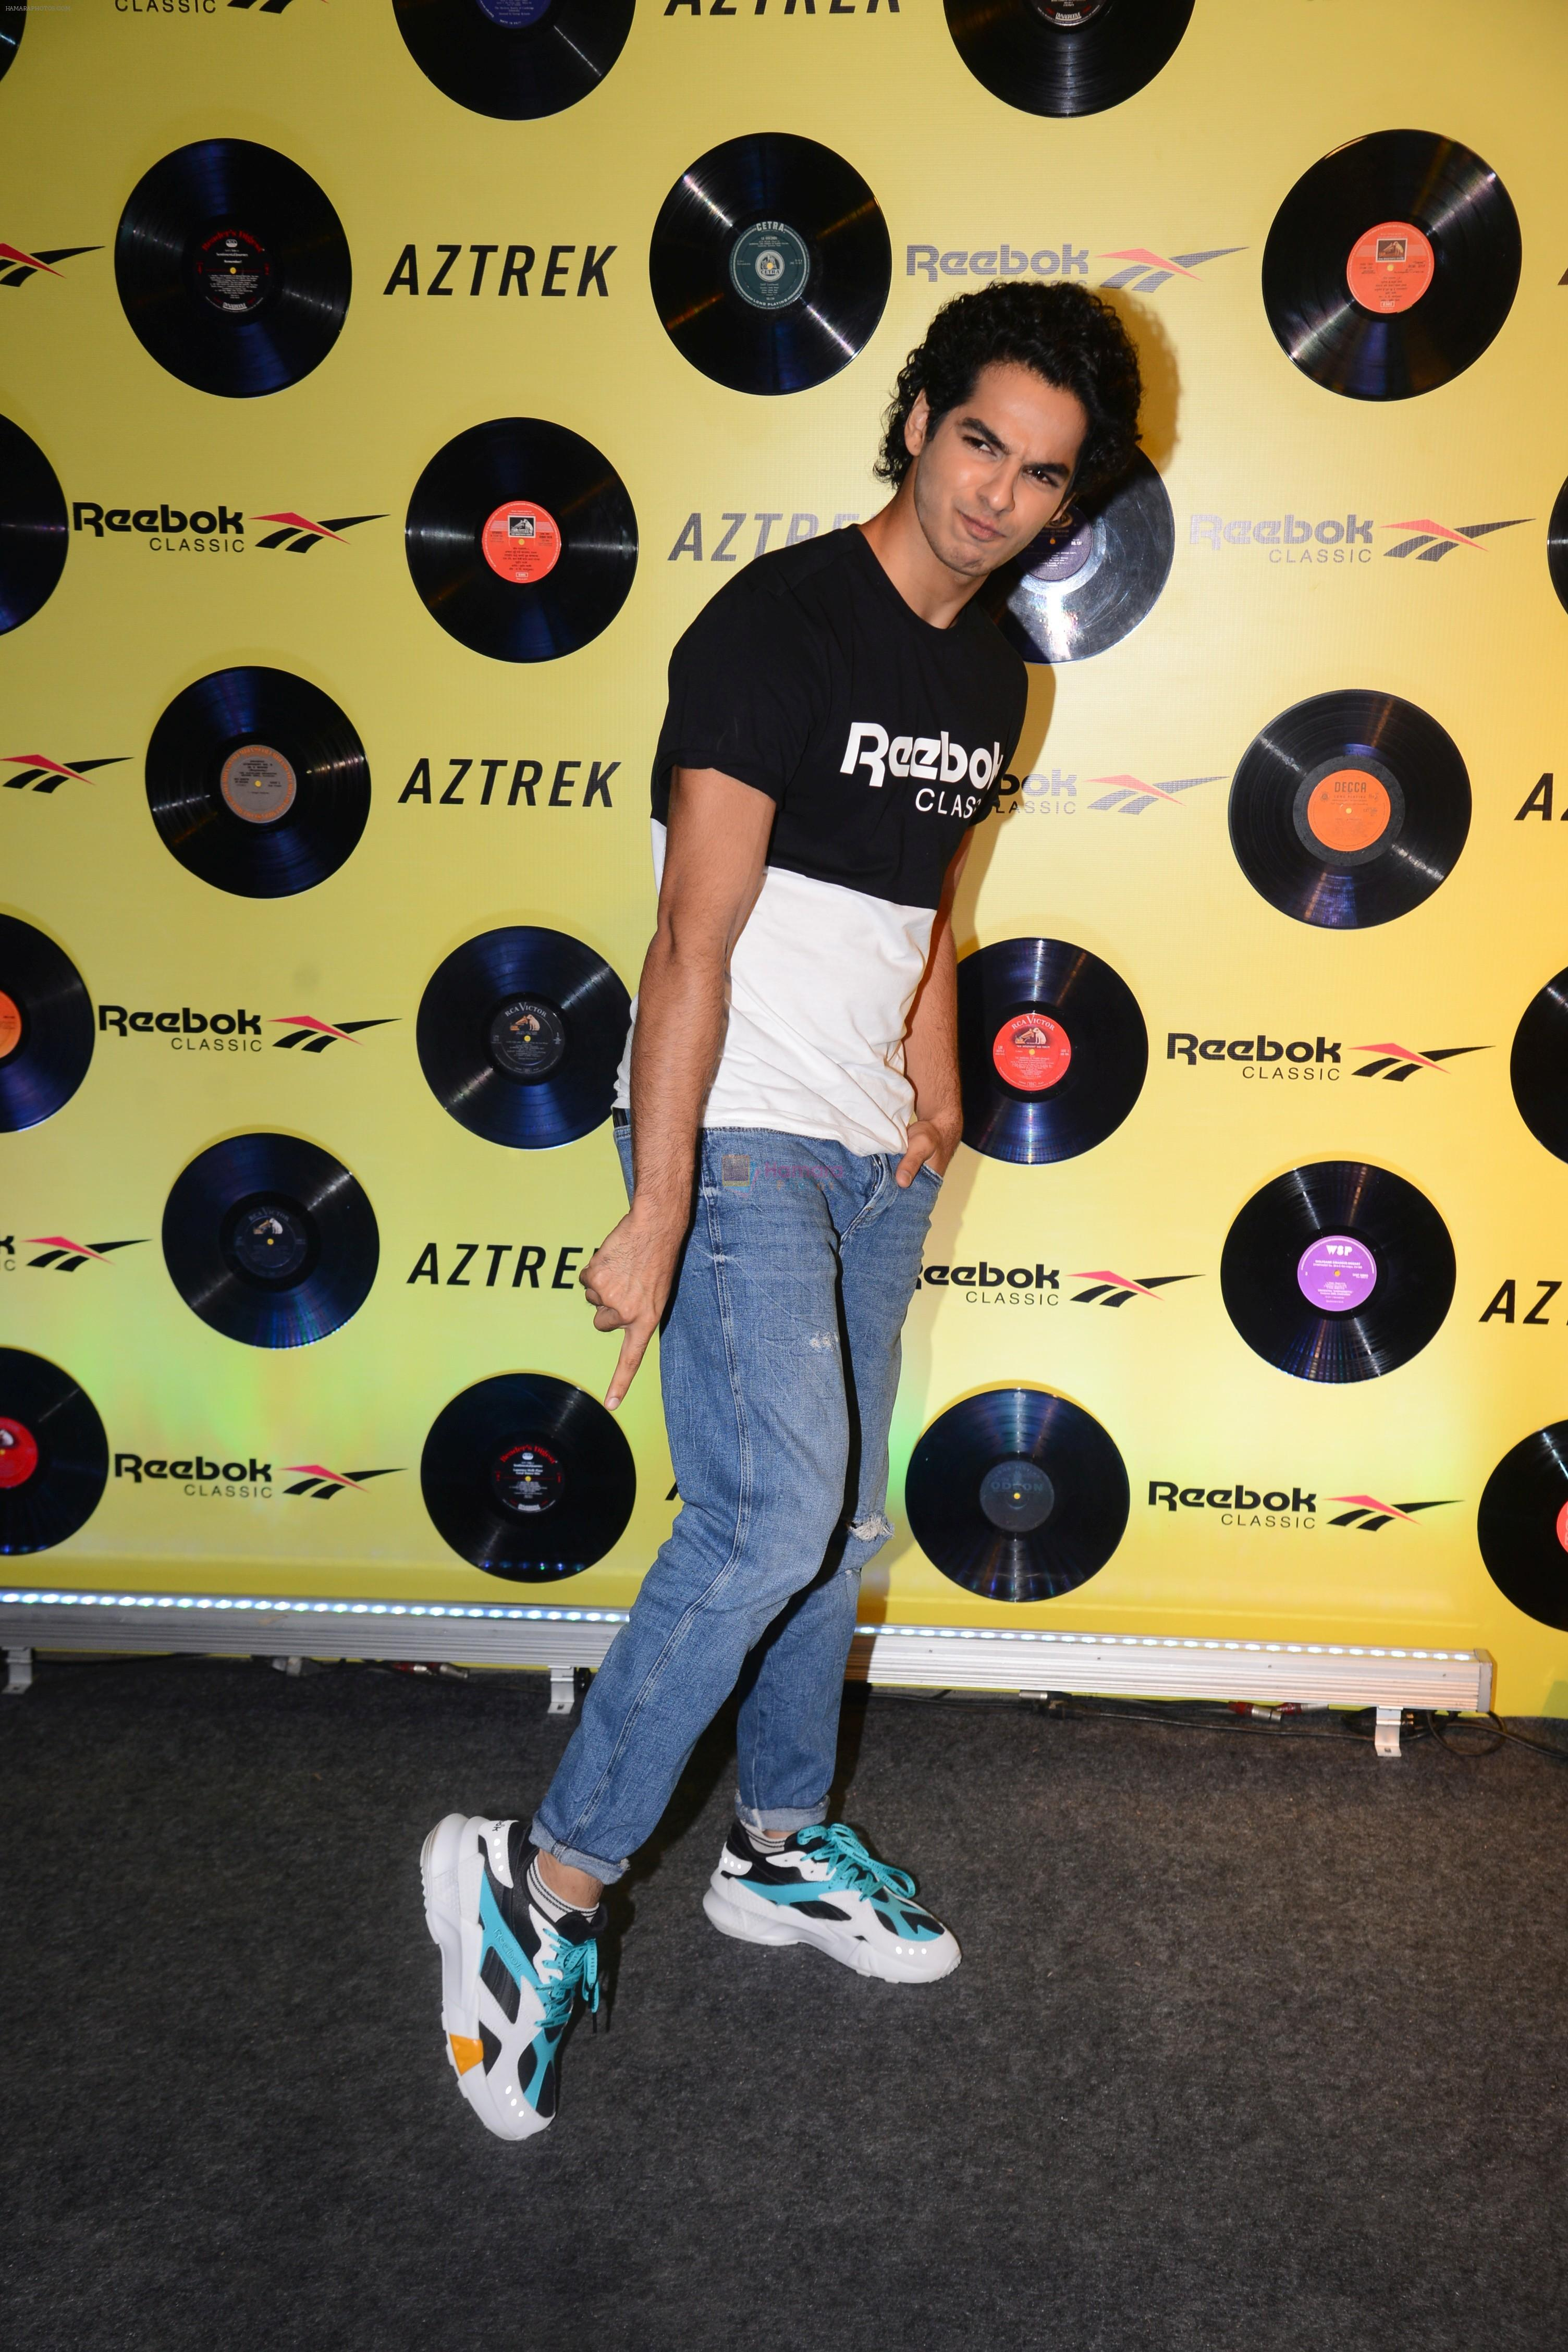 Ishaan Khattar at Reebok Aztrek event at famous studio mahalaxmi on 17th March 2019